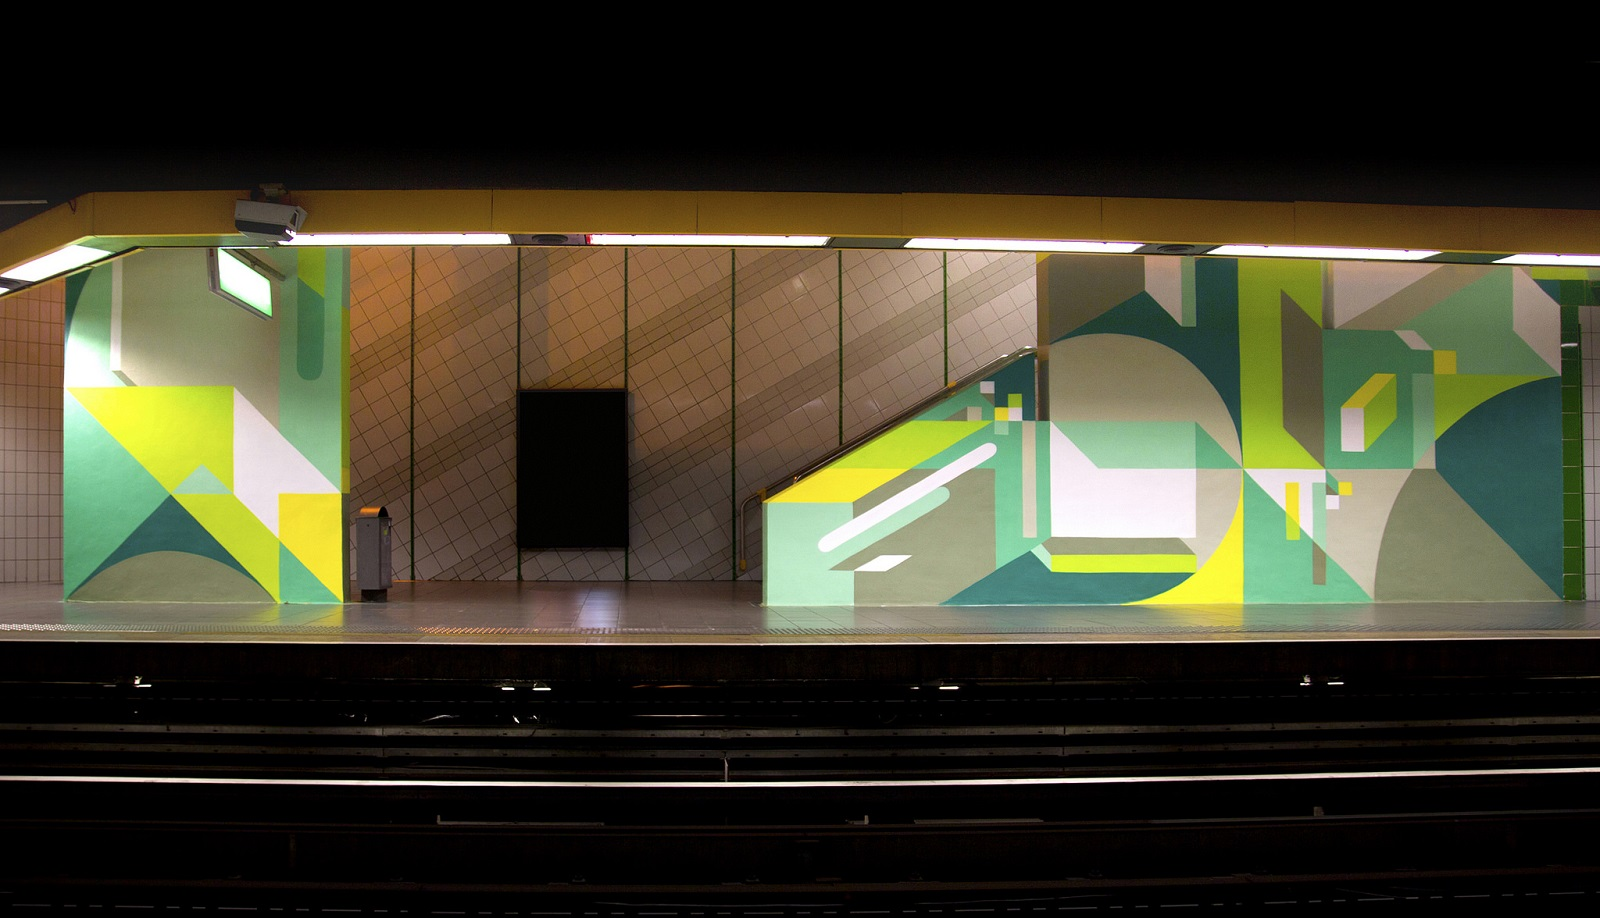 nelio-new-mural-at-station-mermoz-in-lyon-03